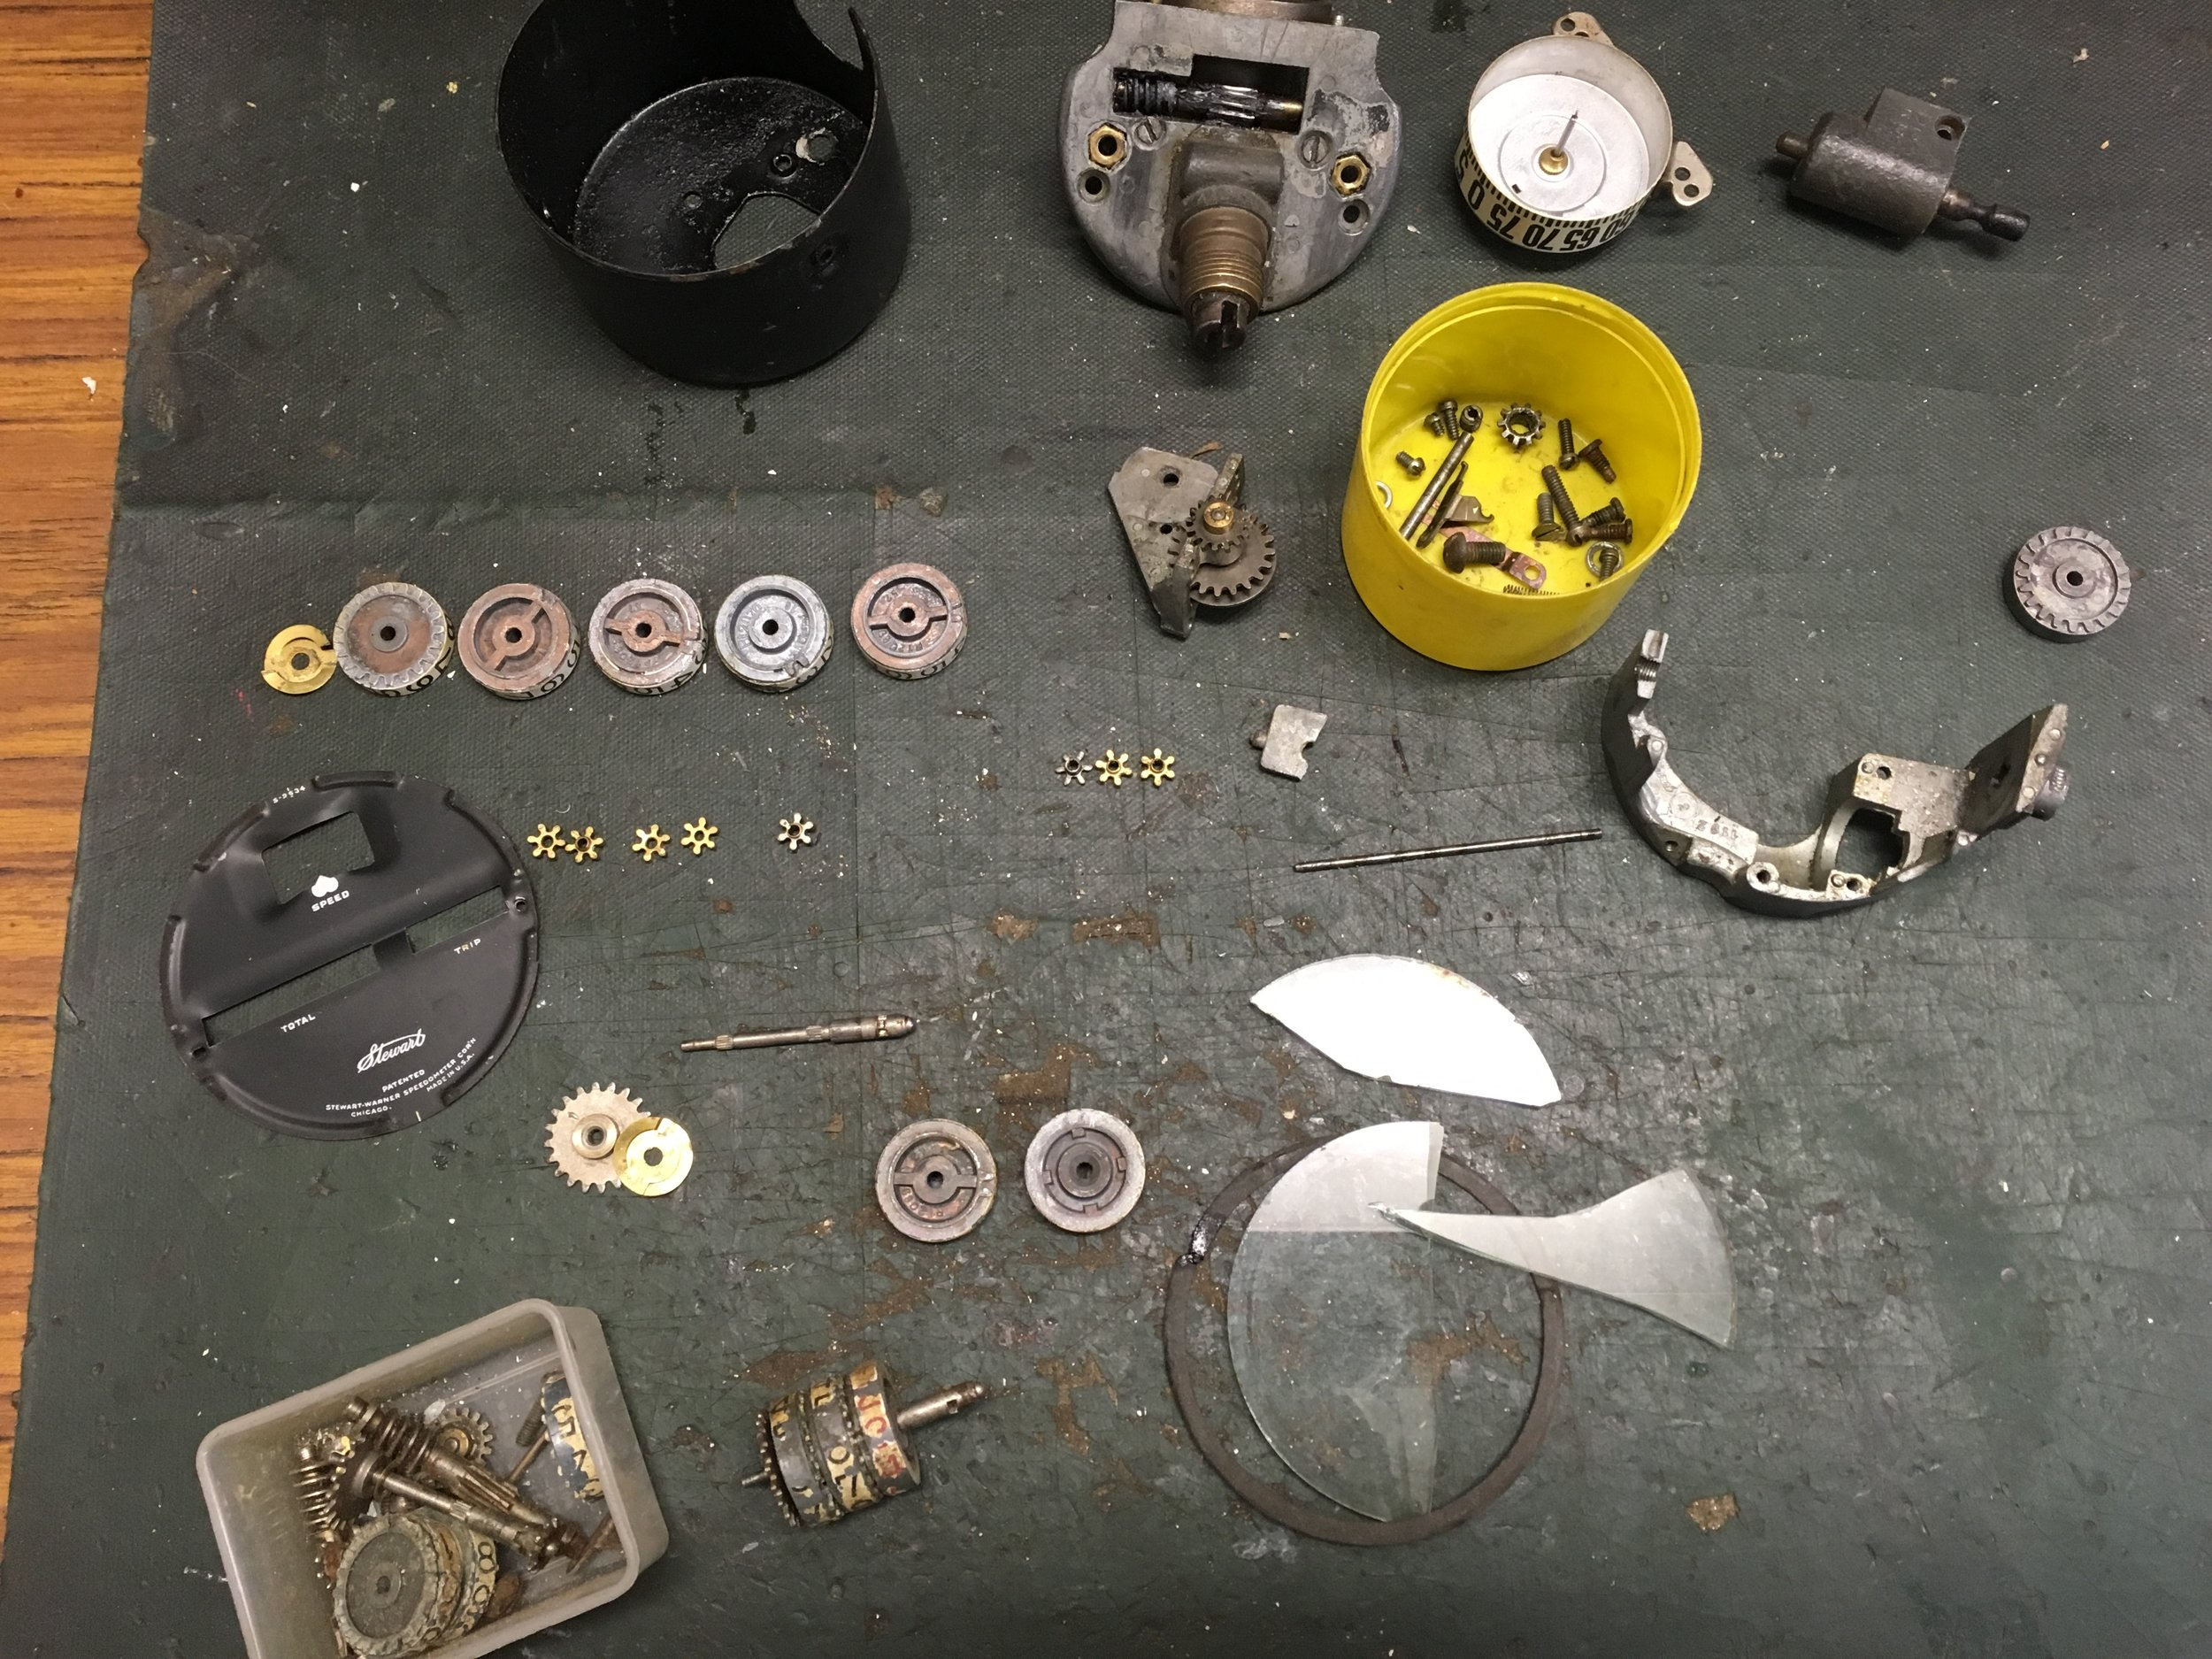 During restoration - disassembled speedometer into all parts to clean and replace all broken gears